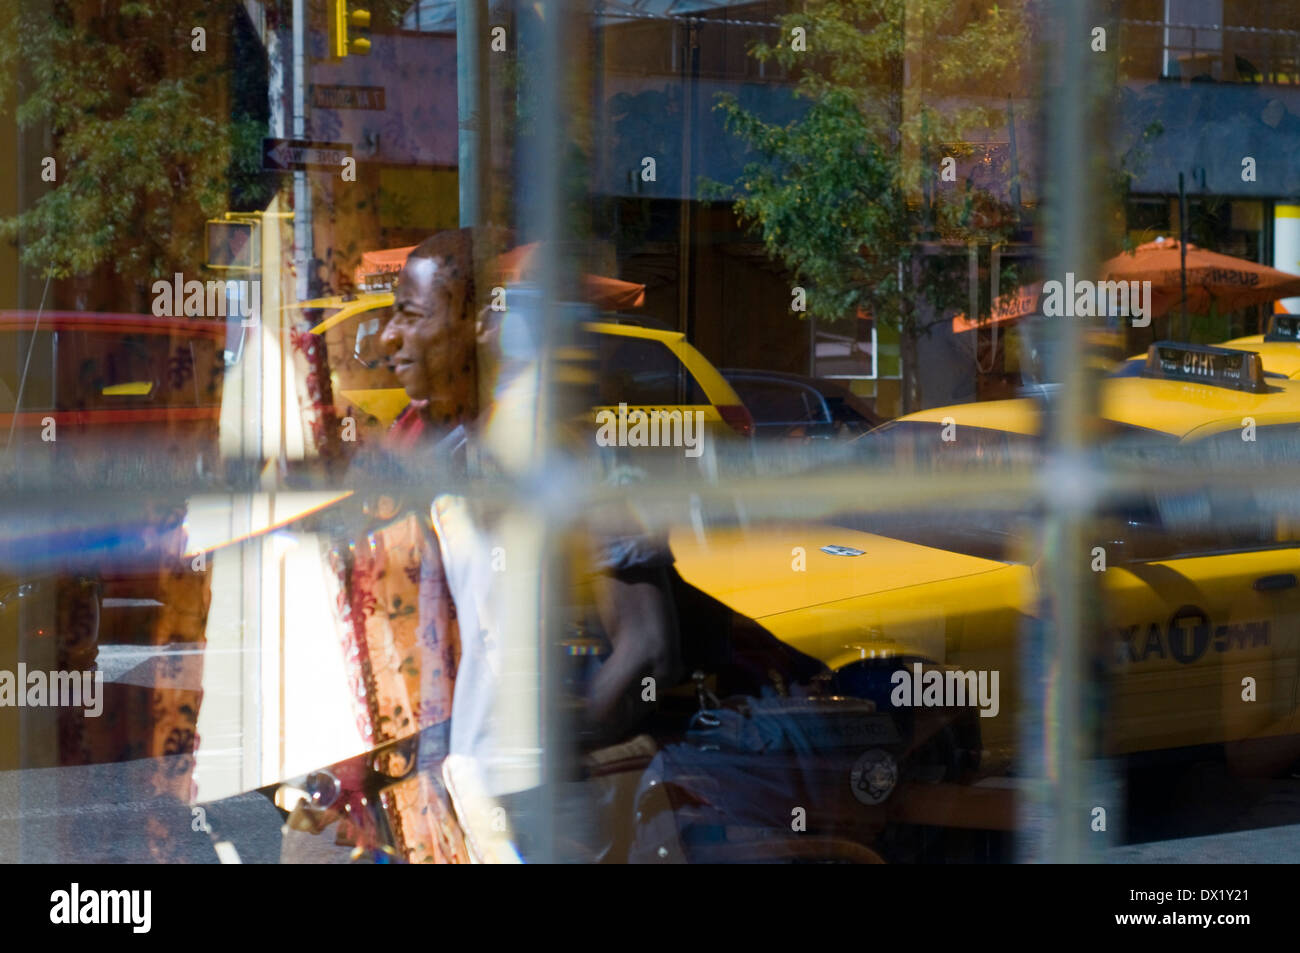 Reflection in a Greenwich Village shop. A residential neighborhood with small houses and interesting to eat or walk areas. - Stock Image